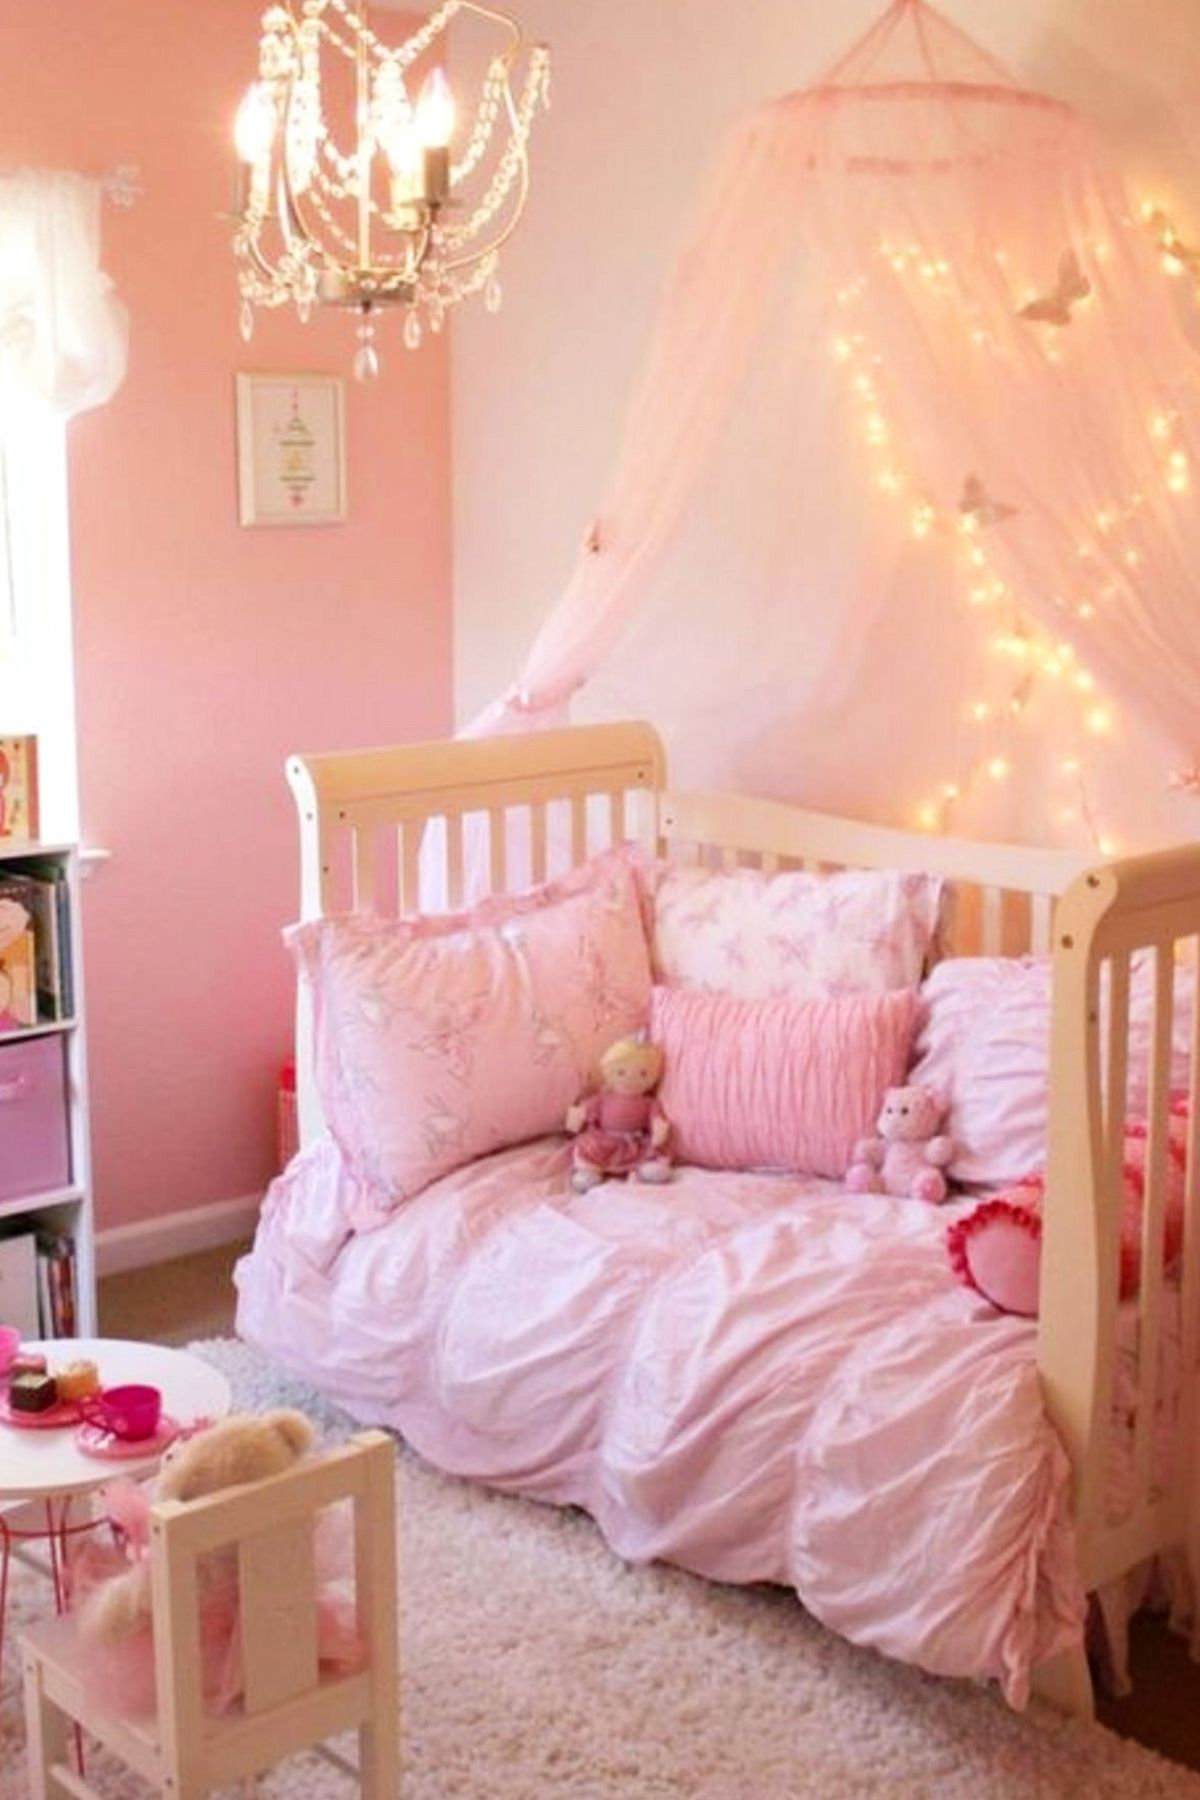 Pink Girls Bedroom Love The Pink Toddler Bed With Canopy St1222019 Sweet Princess Bedroom Idea Toddler Bedroom Girl Pink Bedroom For Girls Pink Toddler Bed